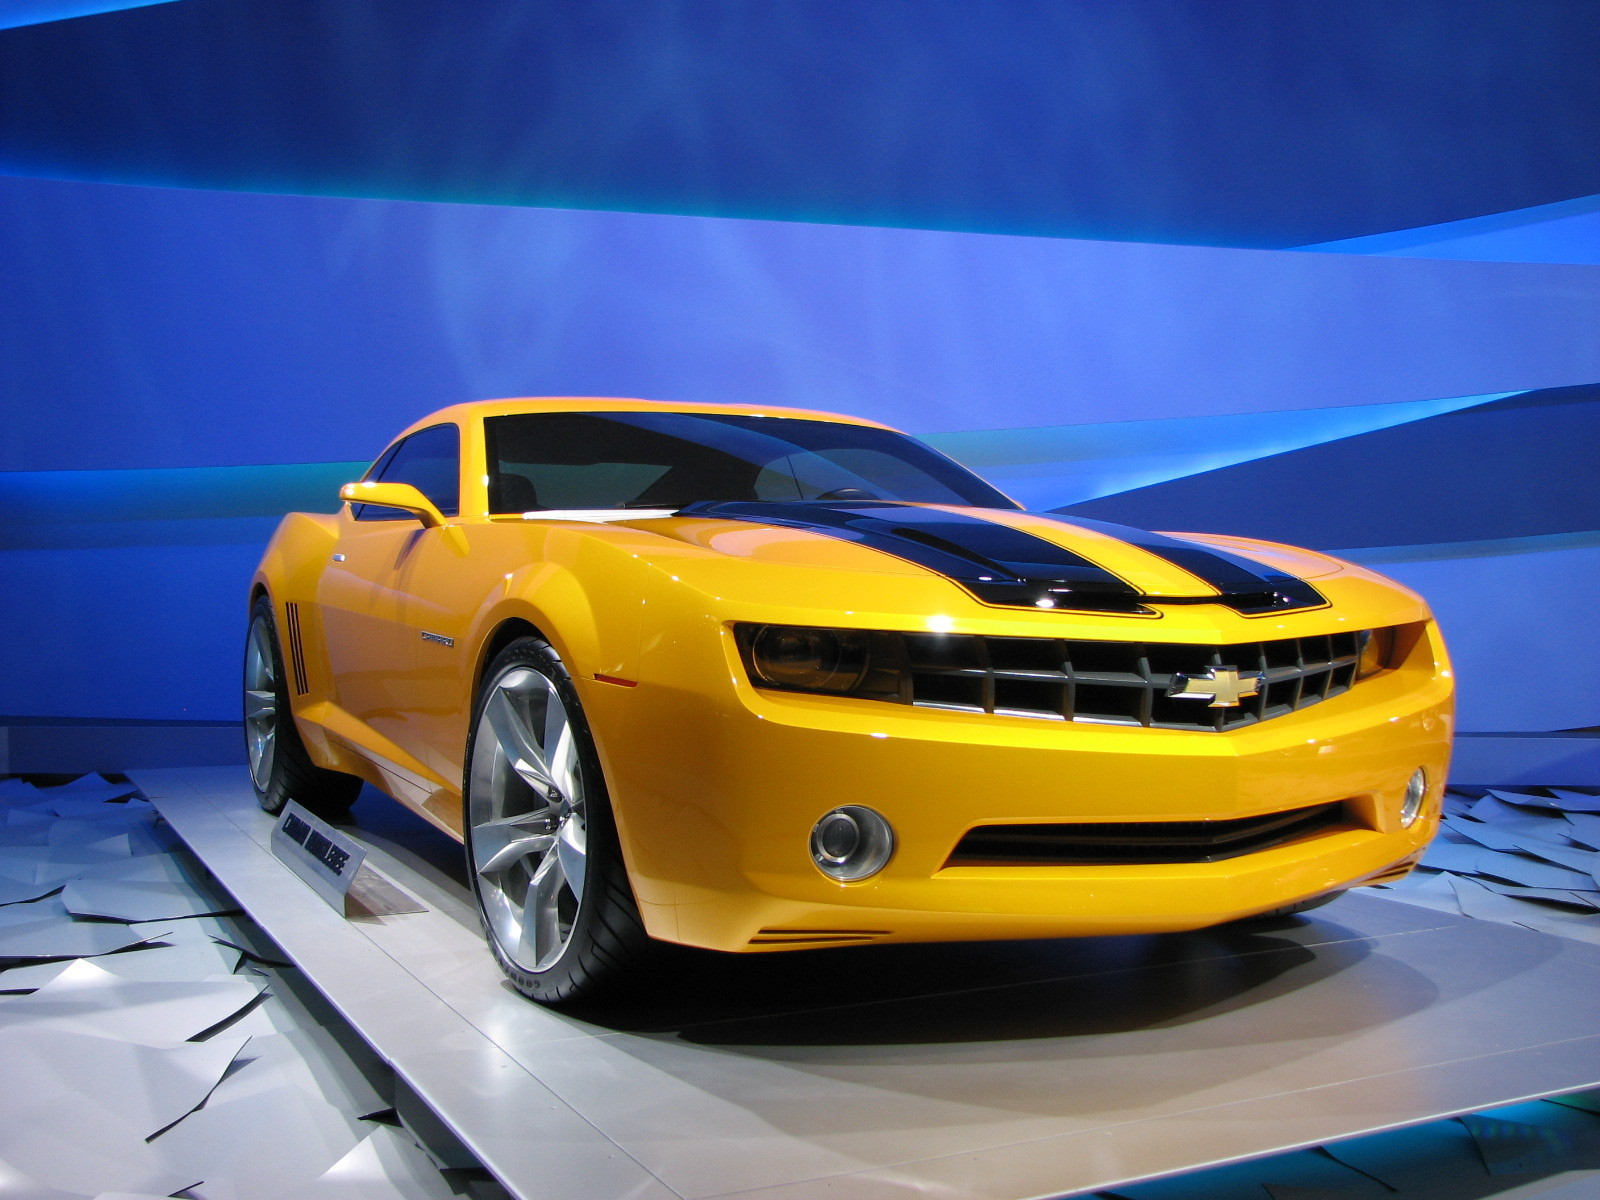 Transformers images the real bumblebee car HD wallpaper ...